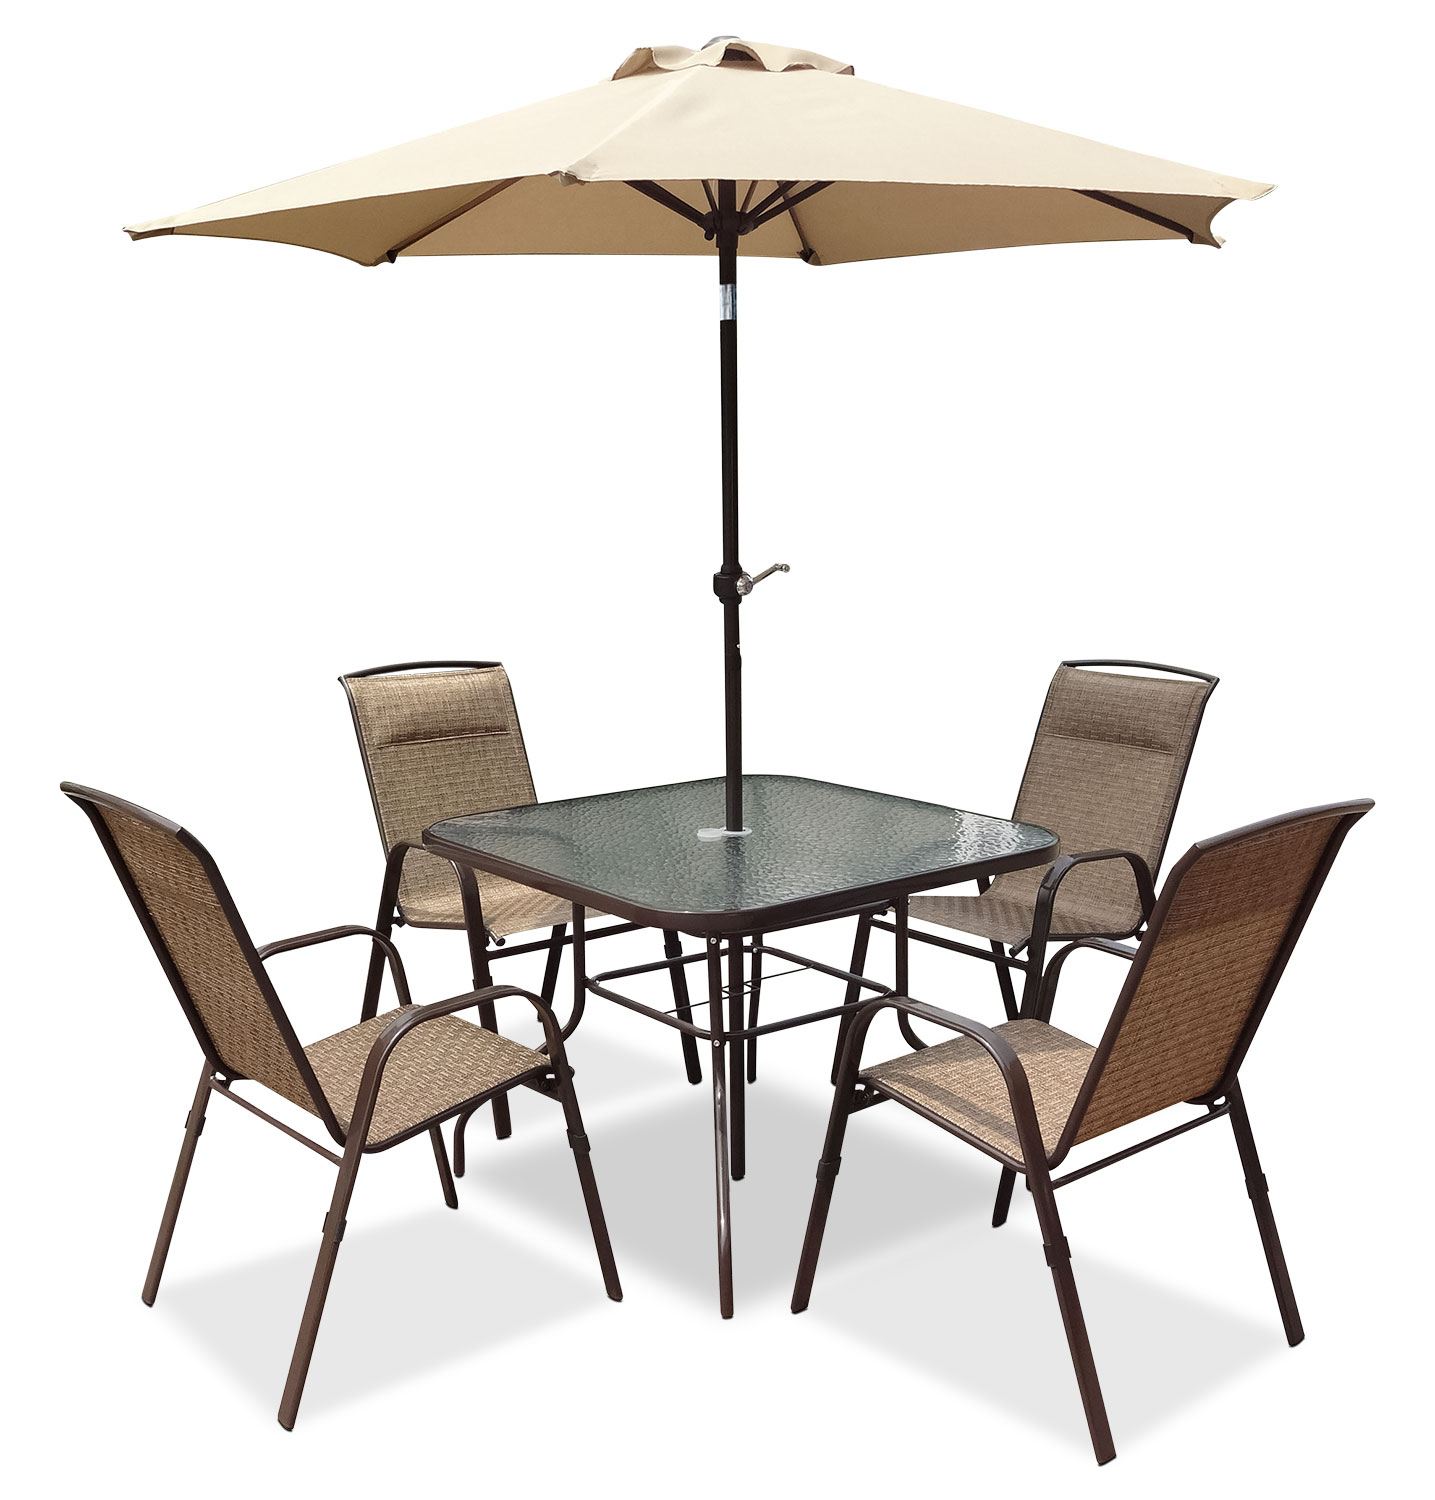 CorLiving 6-Piece Patio Dining Set with Umbrella